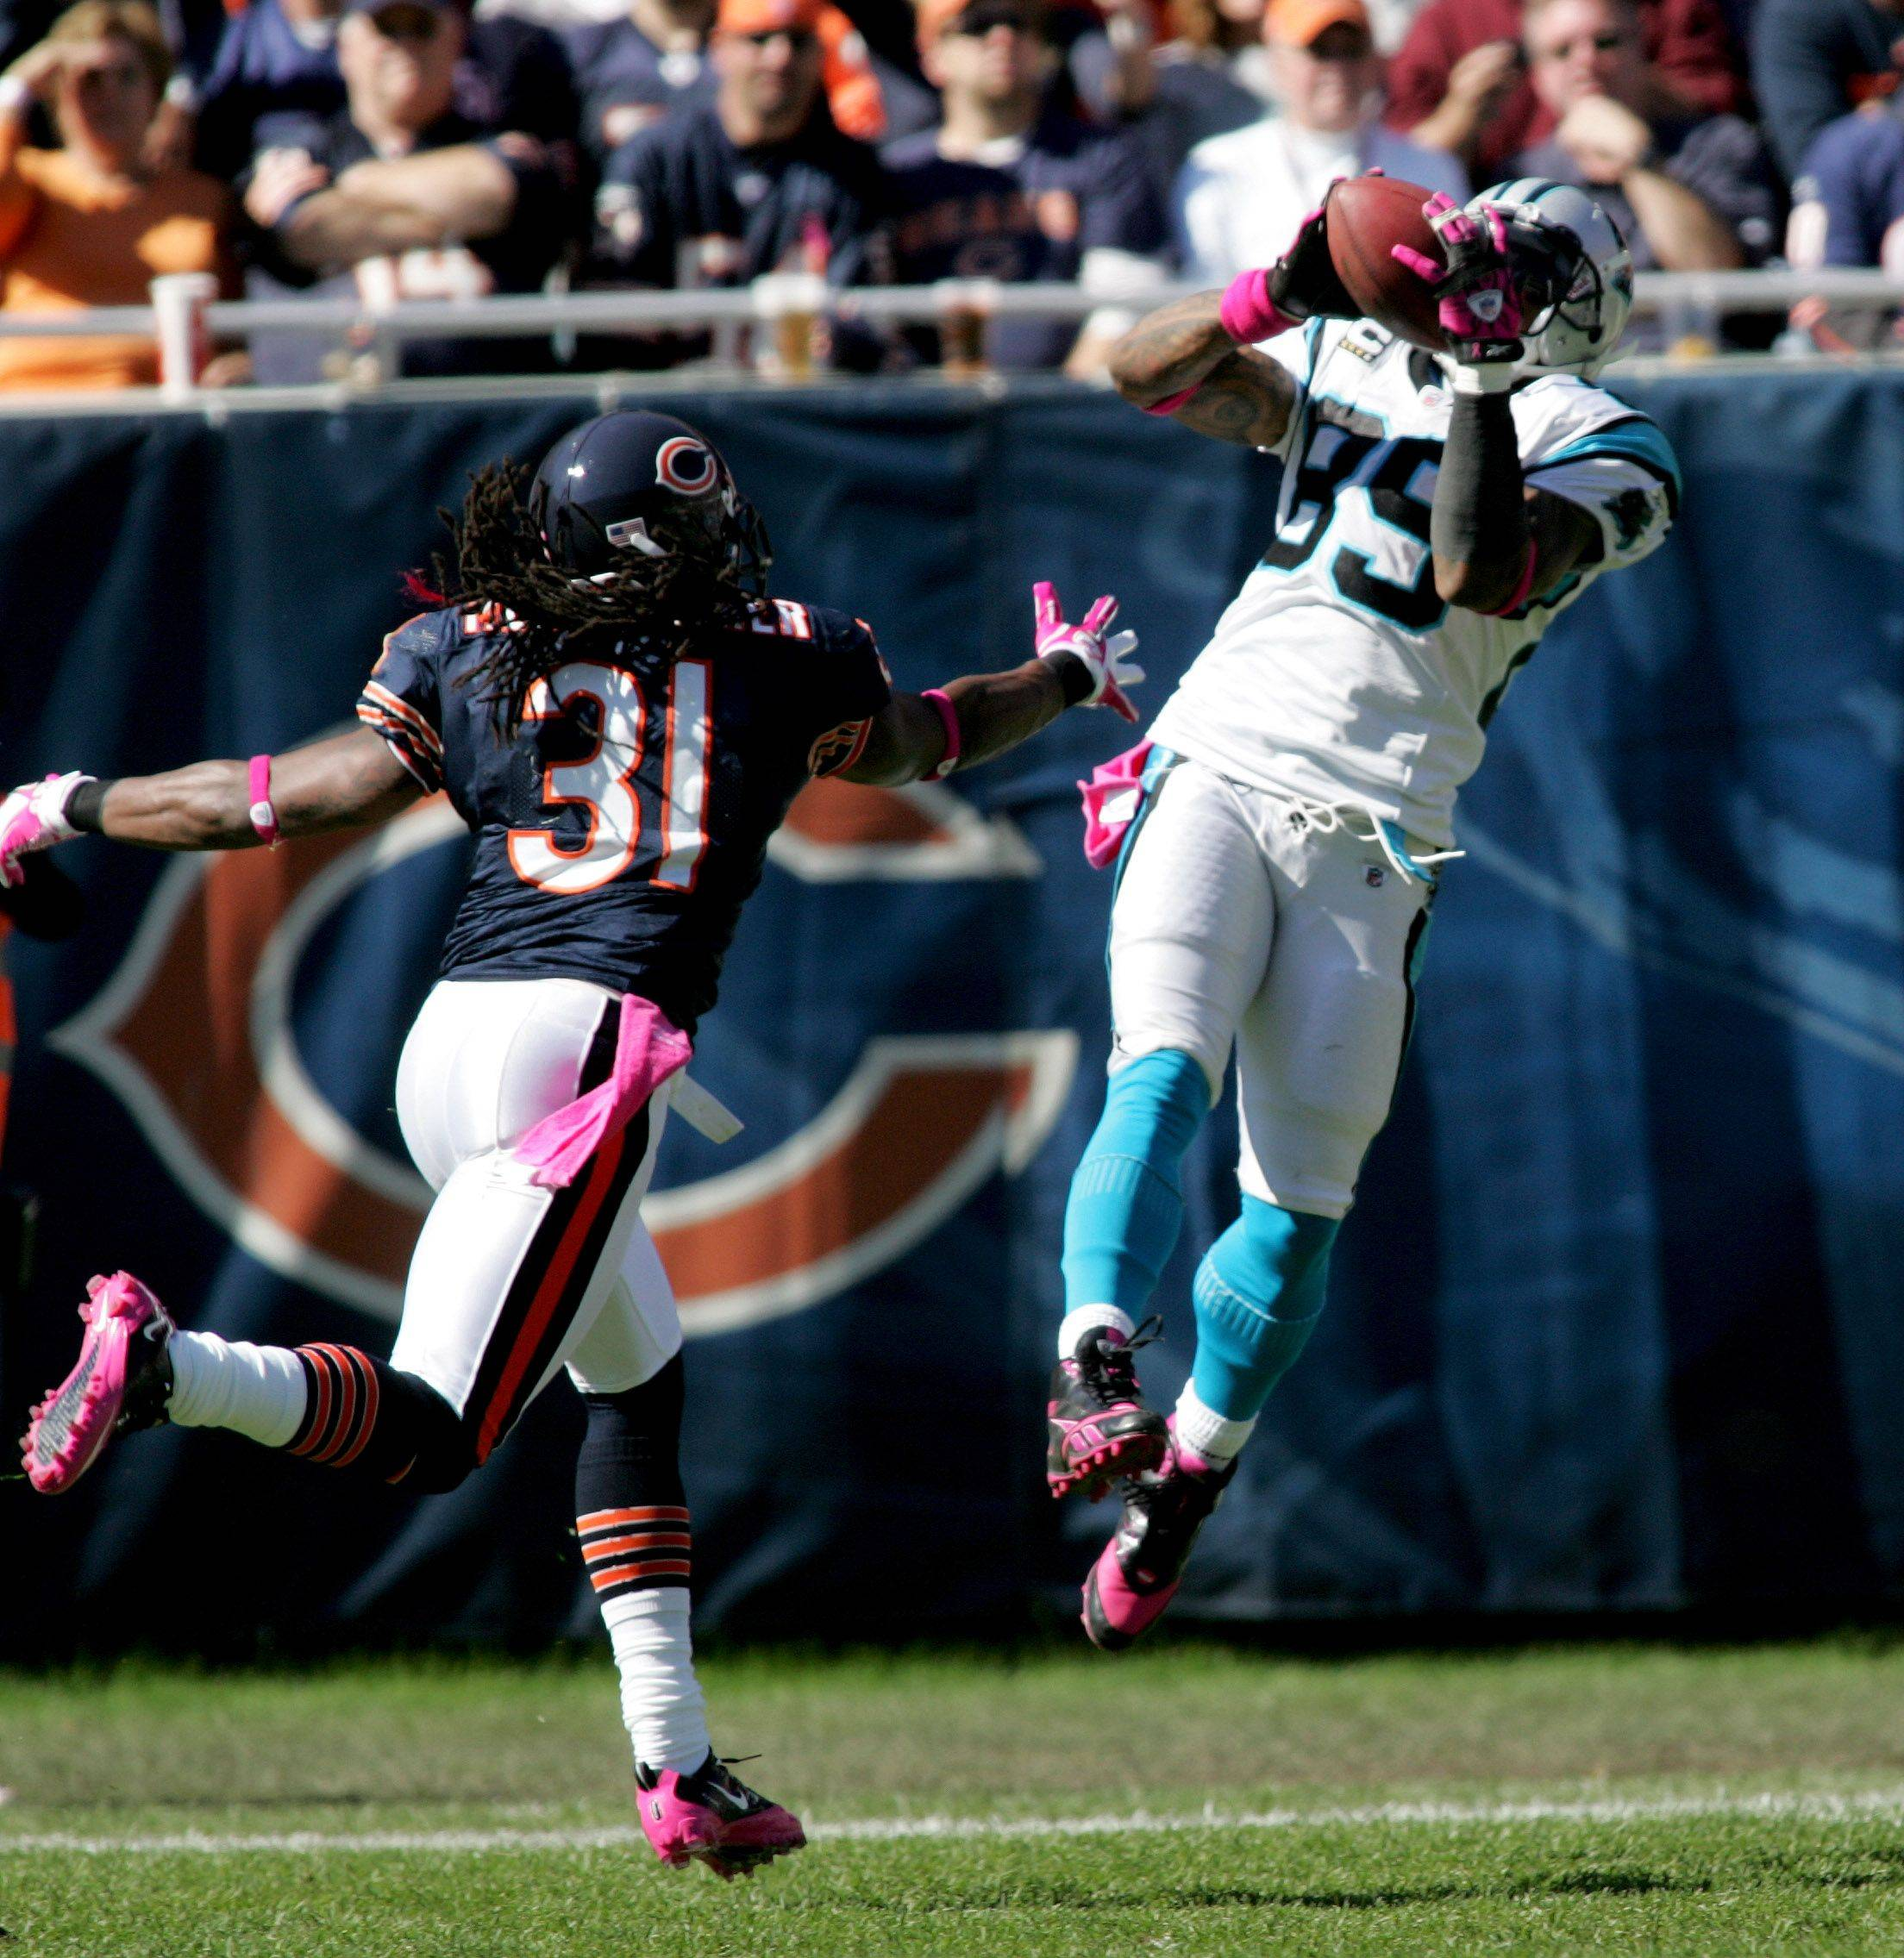 Brandon Meriweather of the Chicago Bears, left, defends as Steve Smith of the Carolina Panthers makes a catch.